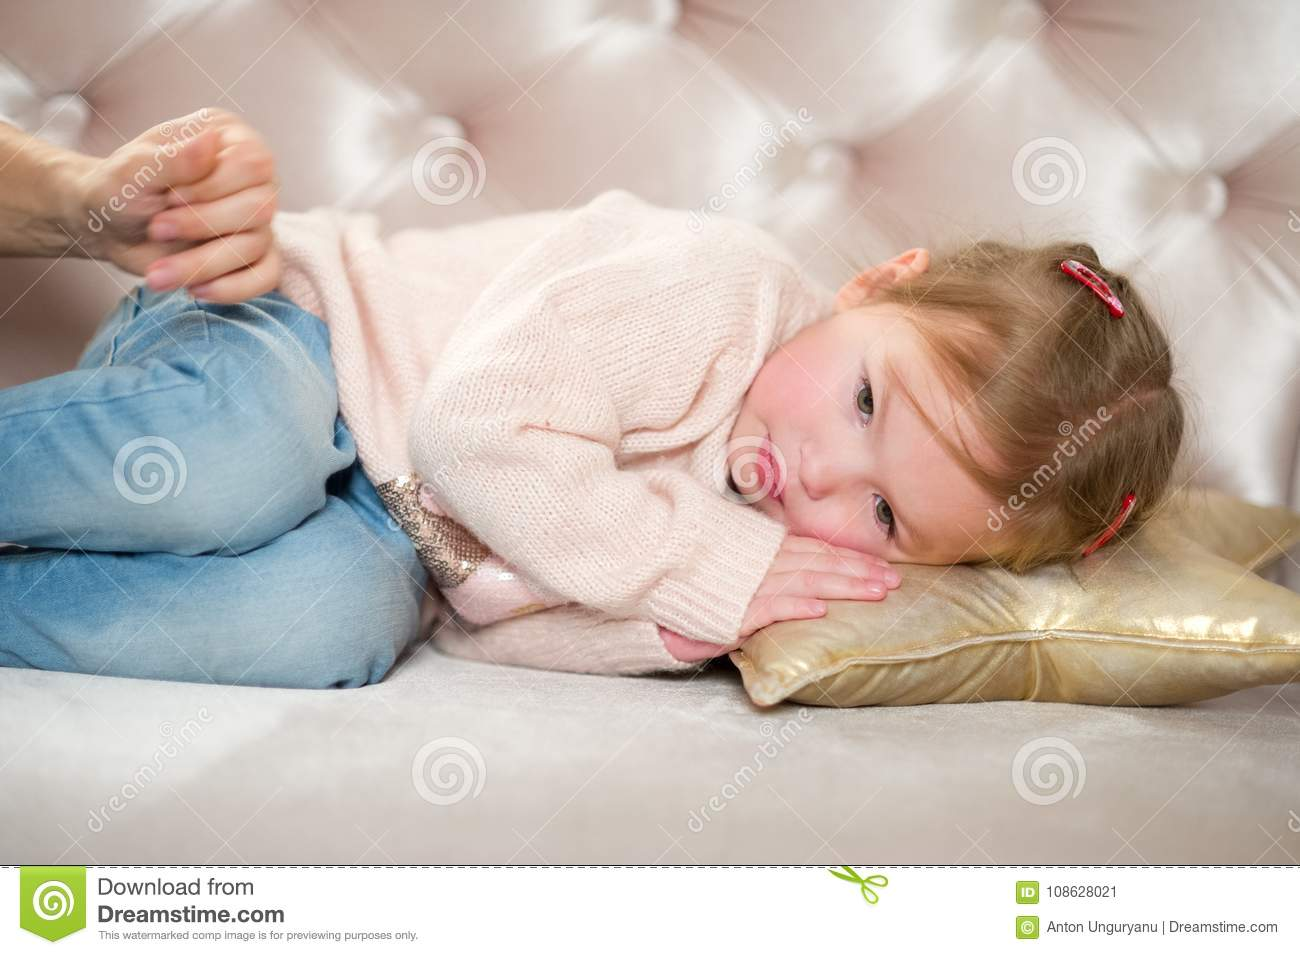 Charming Little Girl Falls Asleep On A Pink Sofa. The Mother`s Hand  Caresses The Baby.